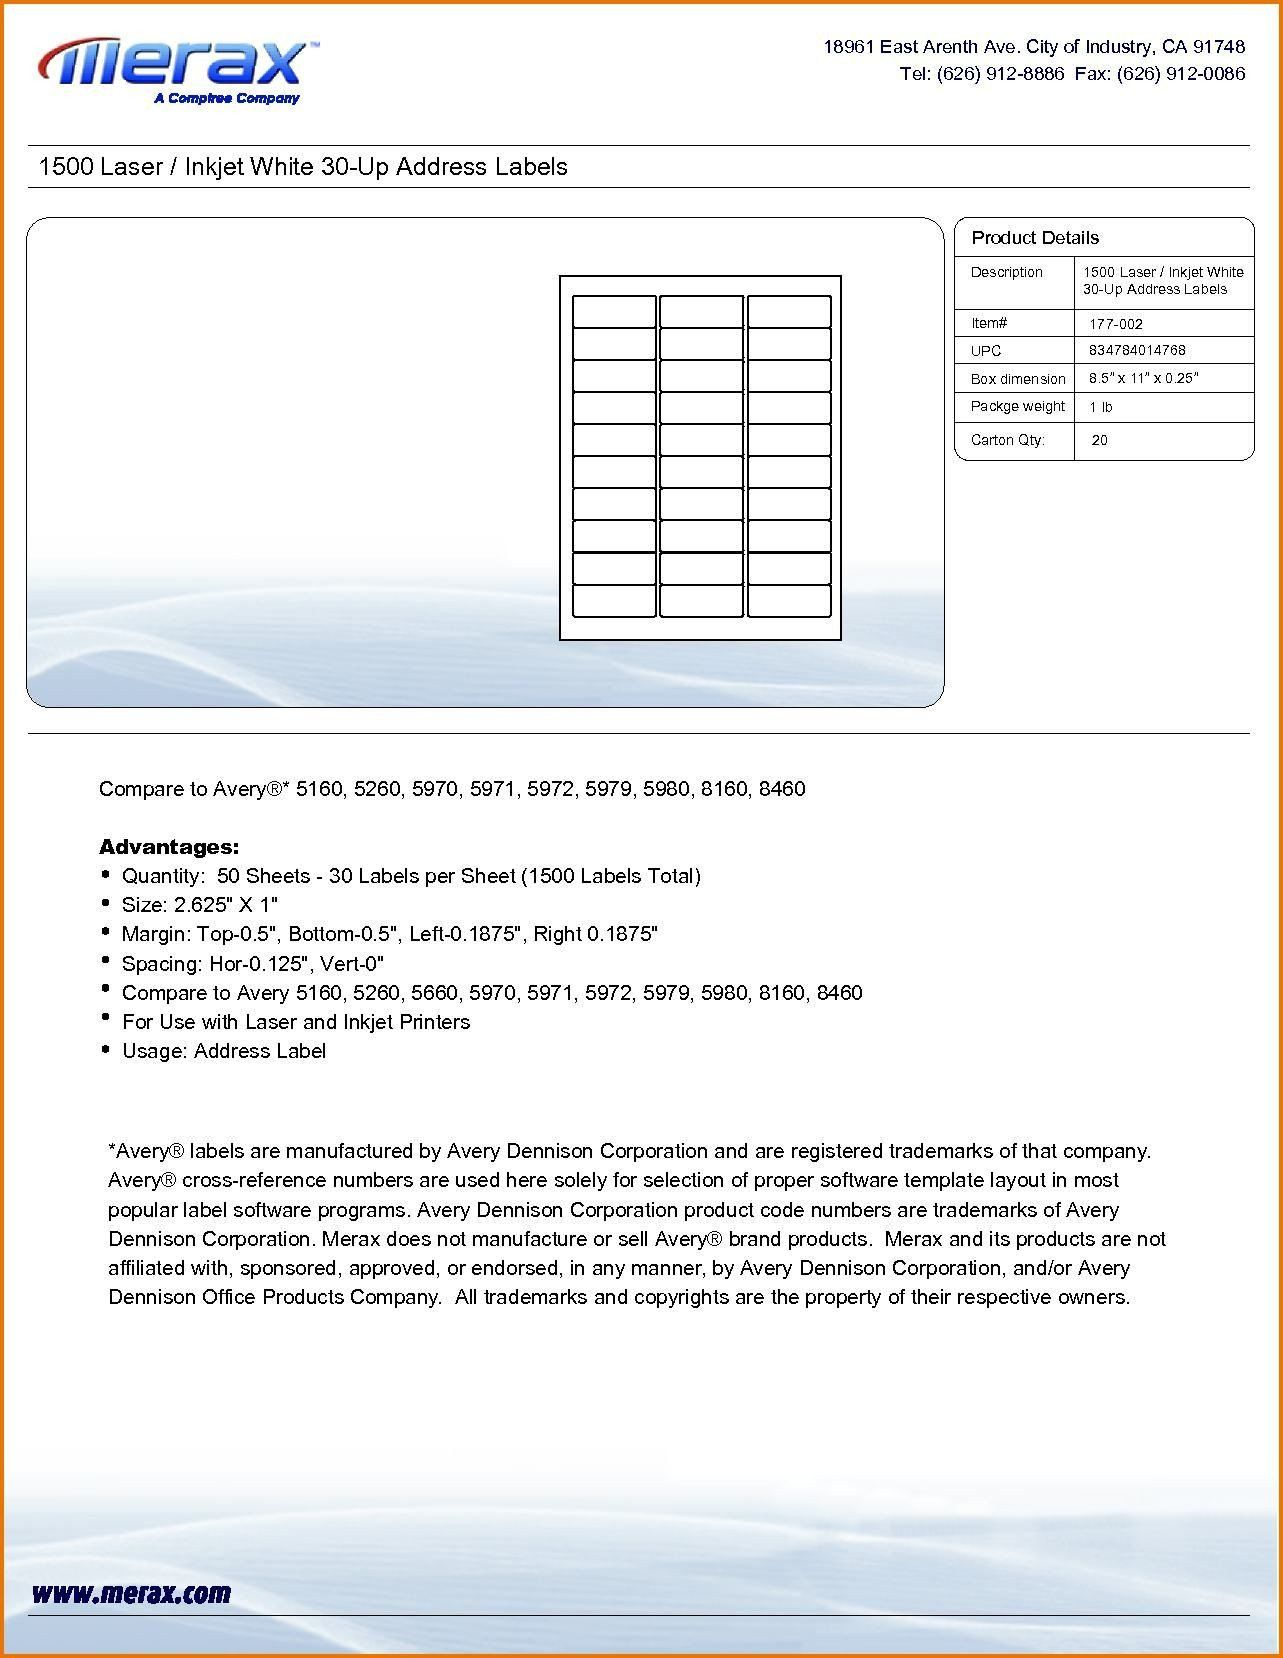 Avery 5260 Label Template Inspirational Avery 5160 Label Template Excel Glendale Munity Label Templates File Folder Labels Address Label Template